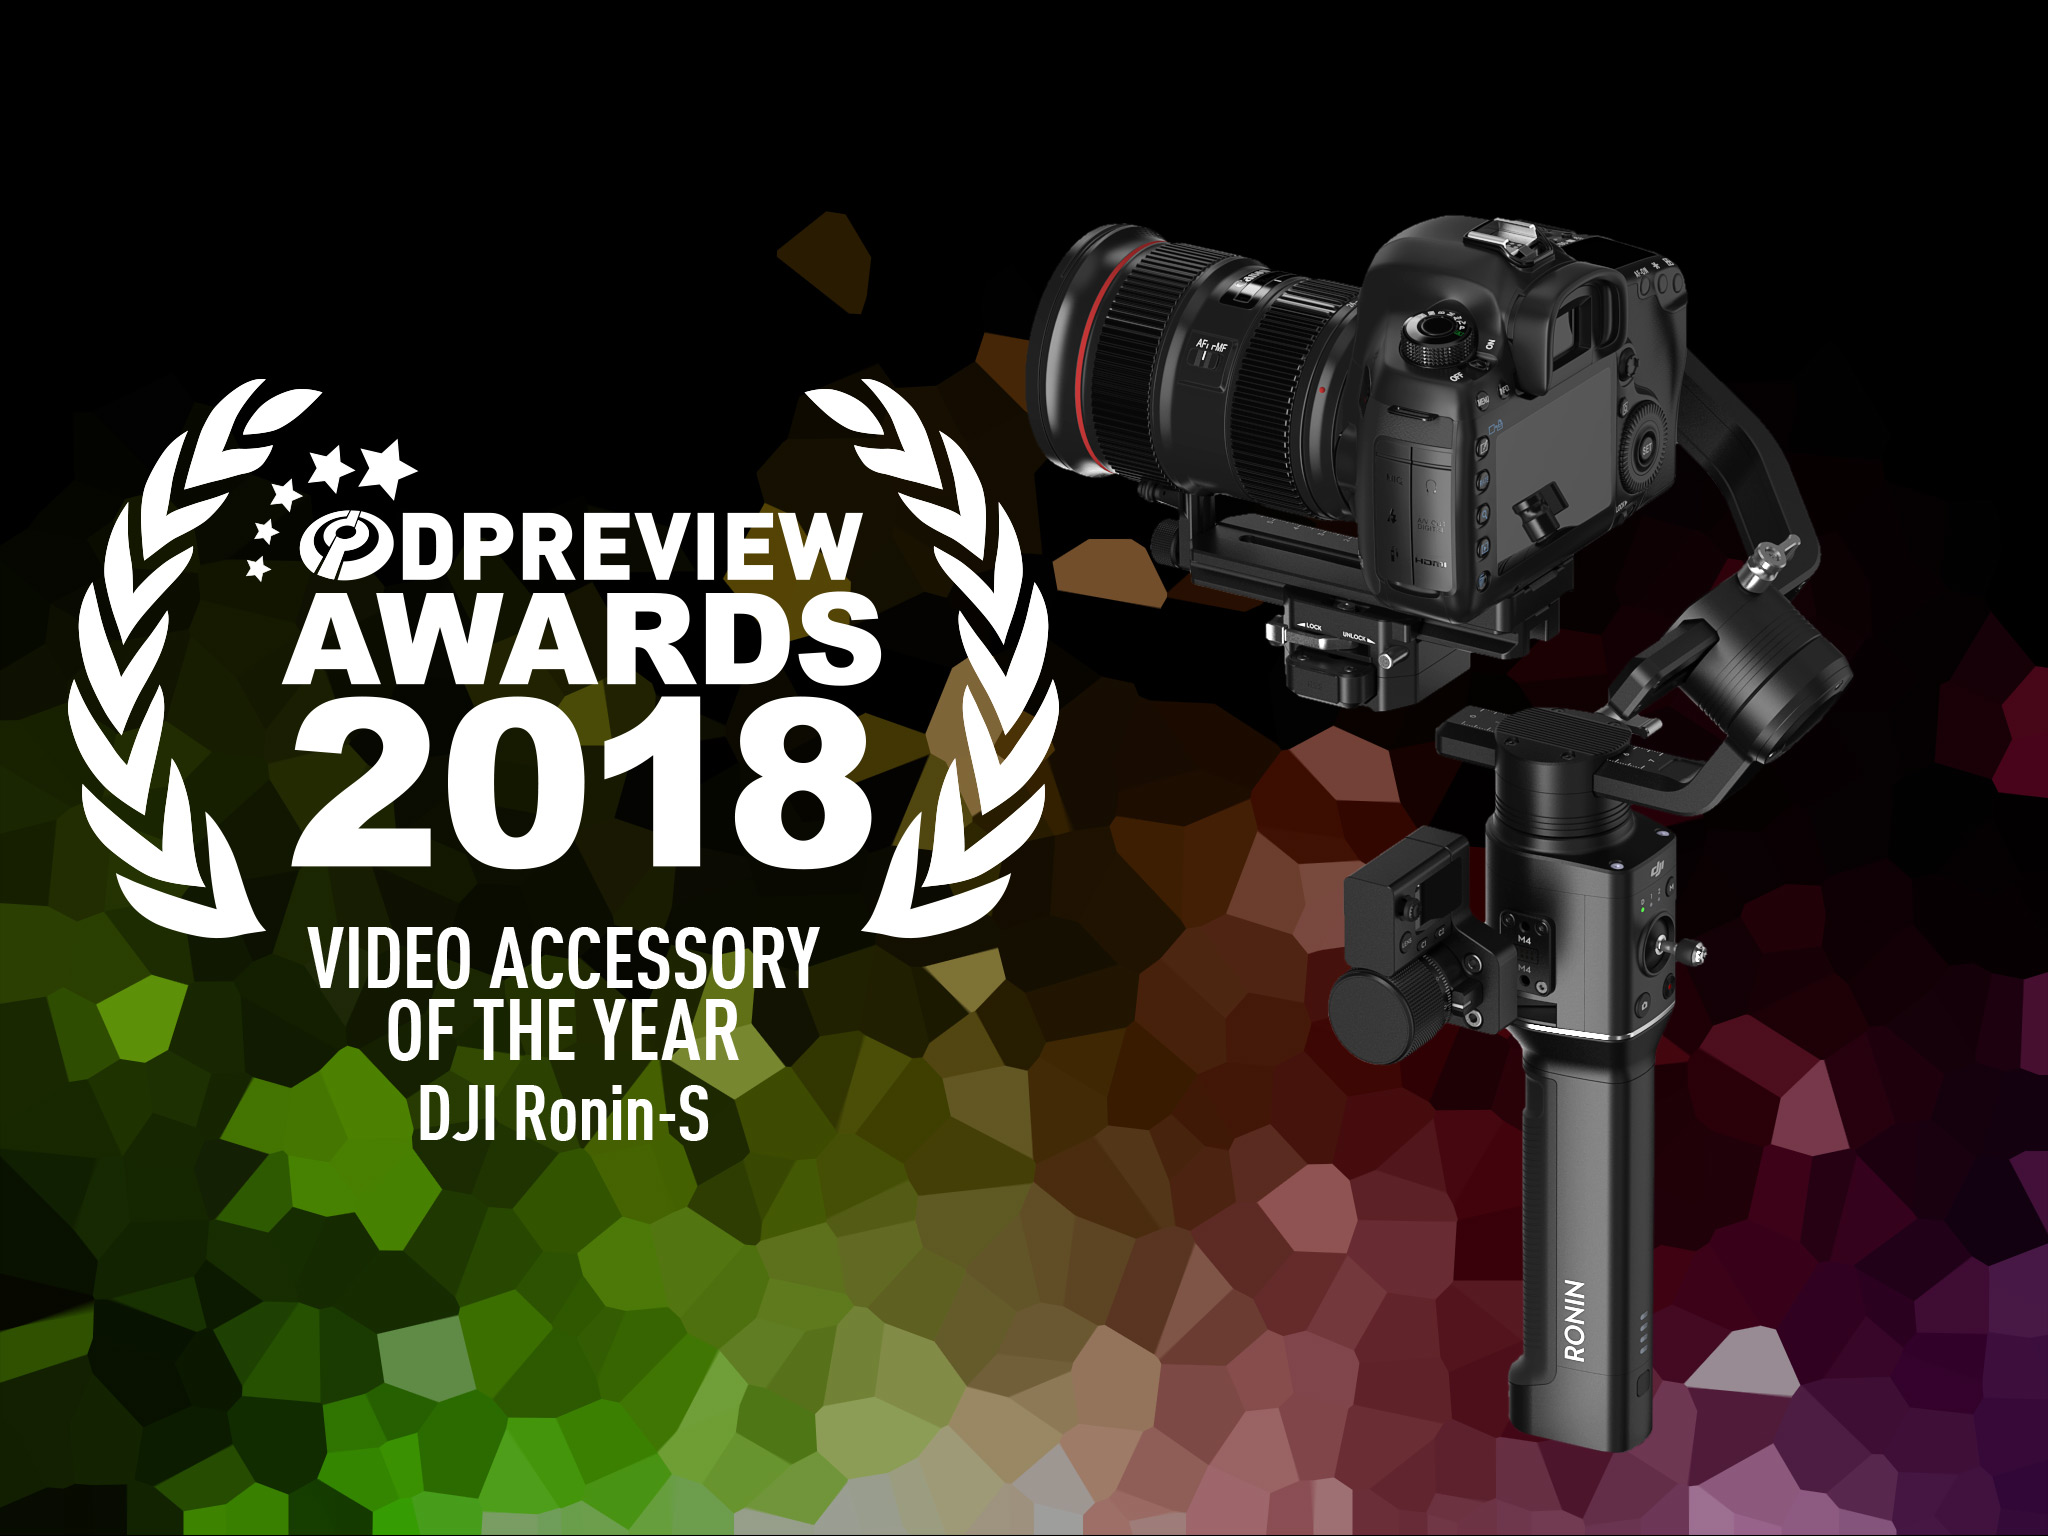 dji-ronin-s-dpreview-photopoint